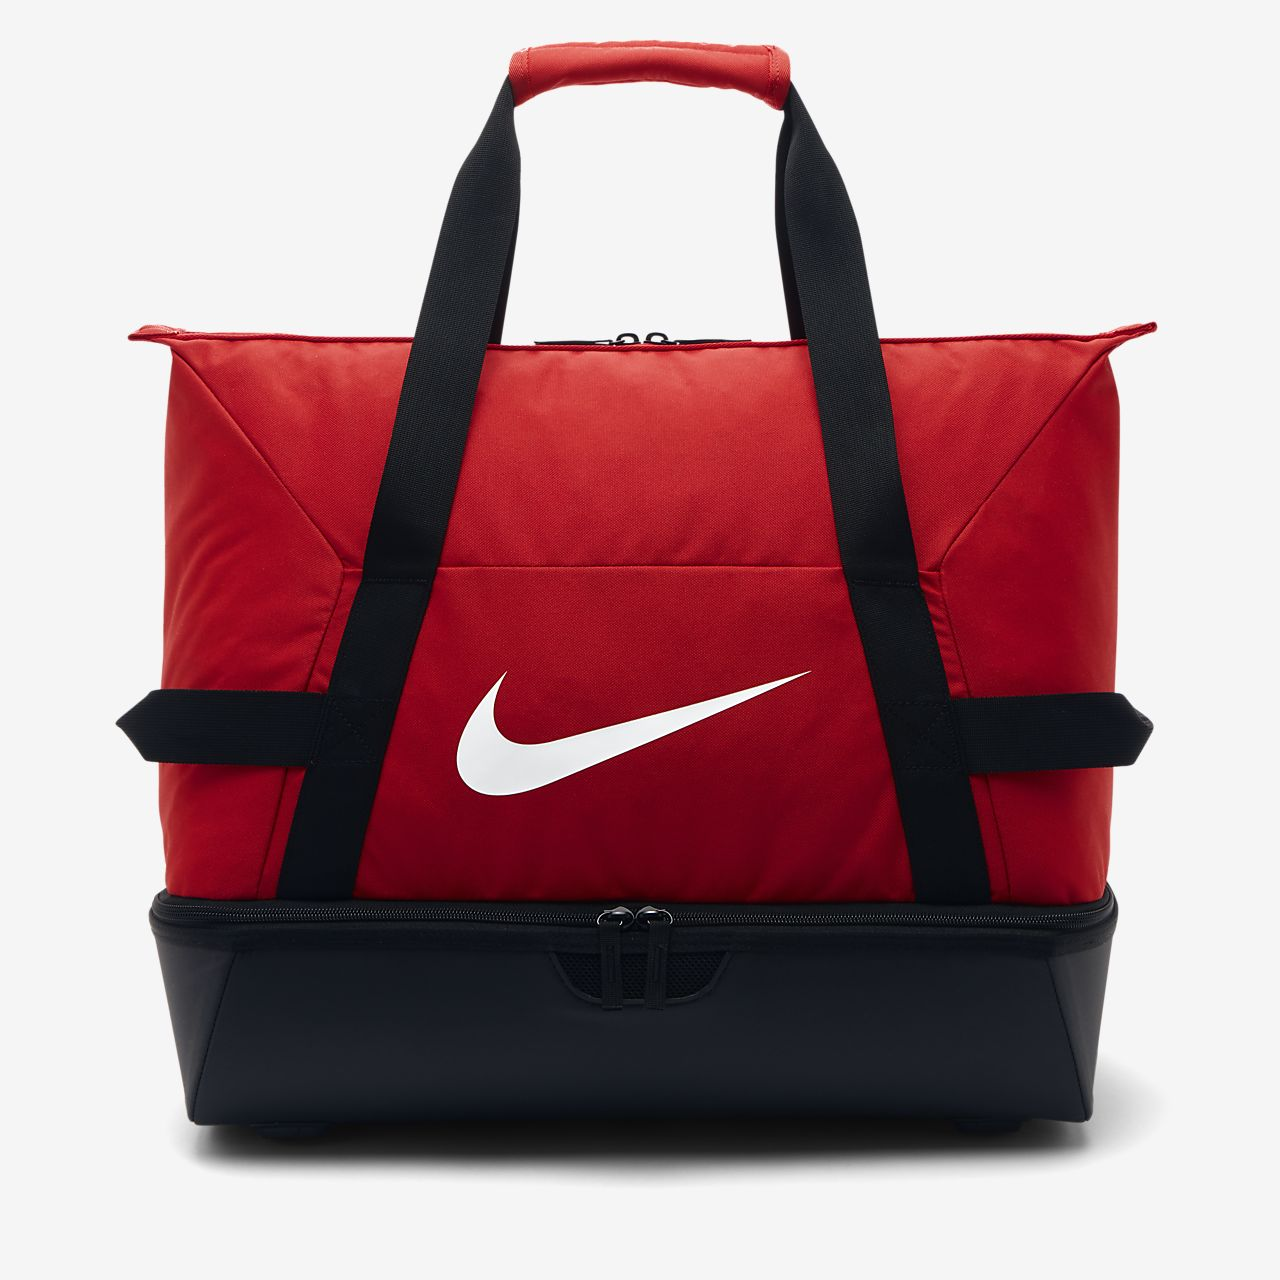 8a85677576f Nike Academy Team Hardcase (Medium) Football Duffel Bag. Nike.com SE